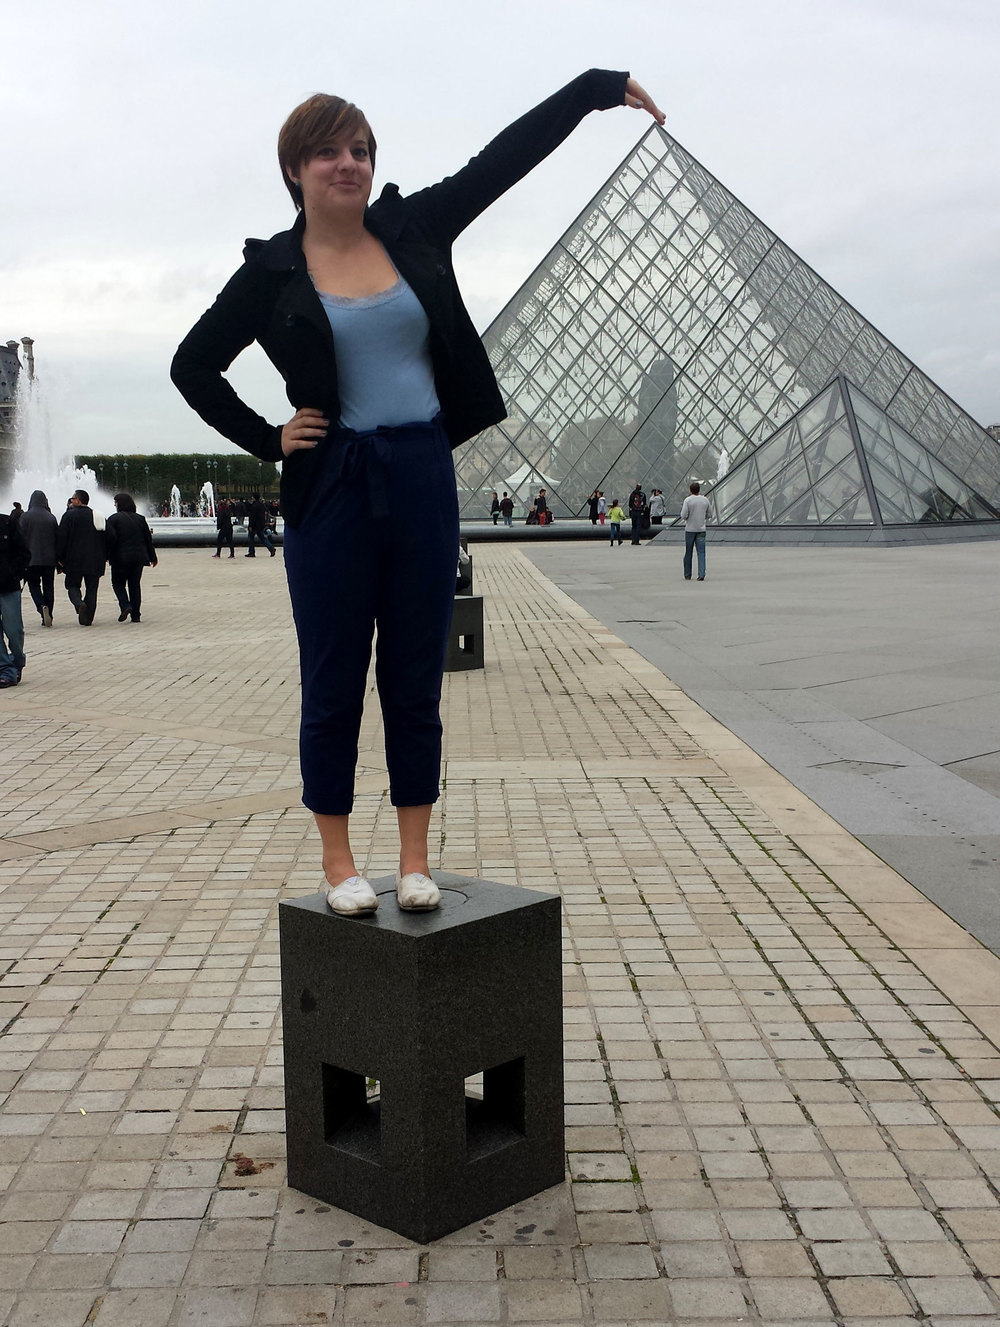 Perhaps the most touristy photo in Paris...